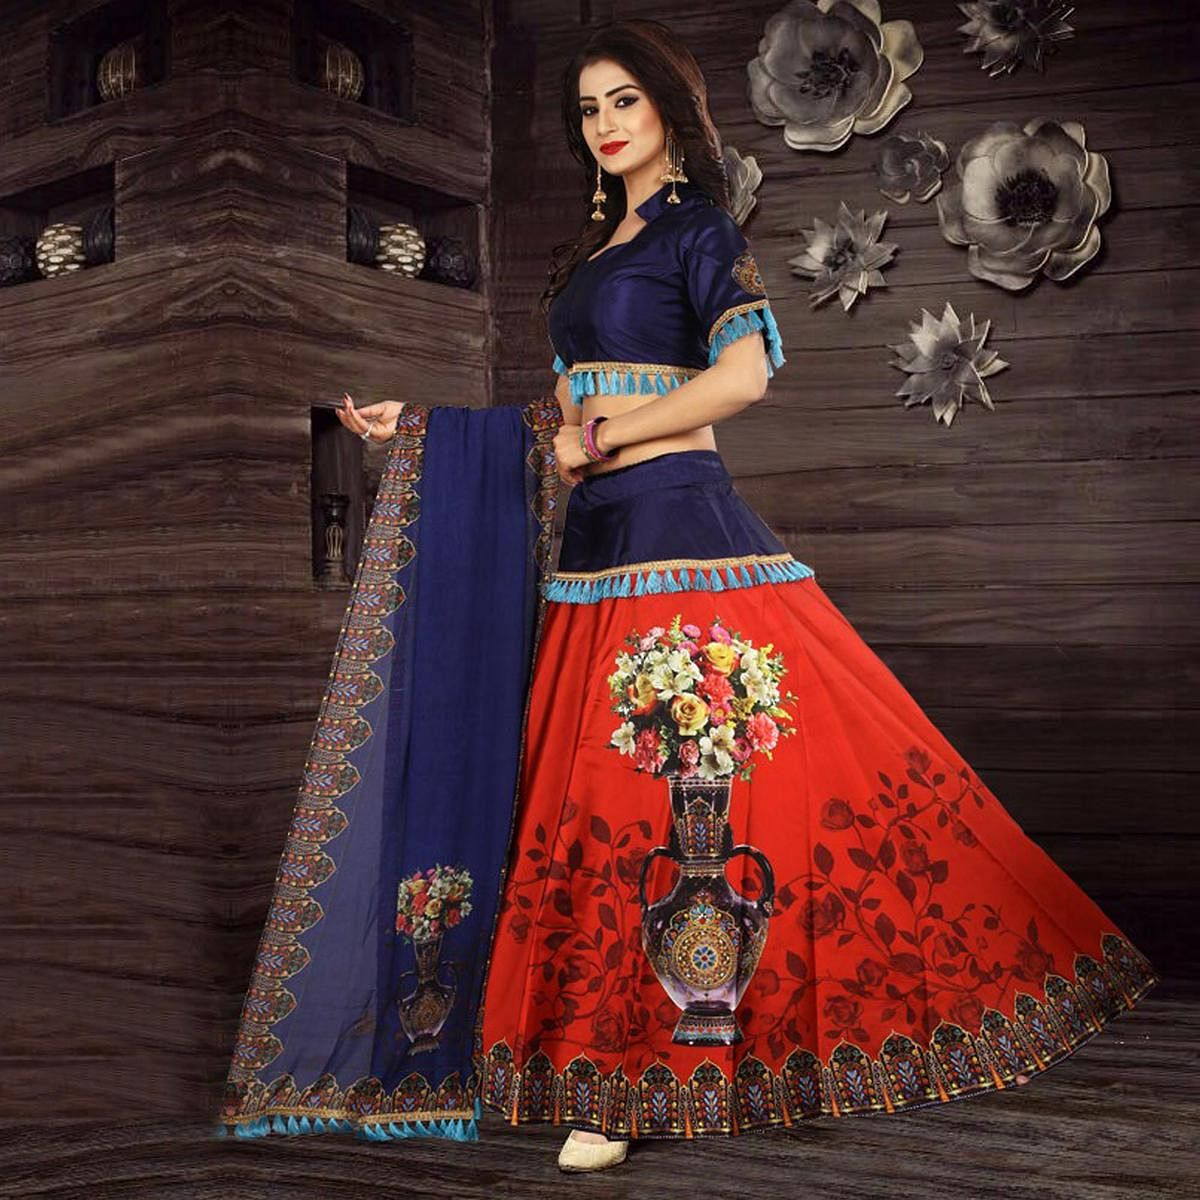 cad4d9226c Buy Ravishing Red - Blue Designer Digital Printed Stitched Tapetta Silk Lehenga  Choli for womens online India, Best Prices, Reviews - Peachmode